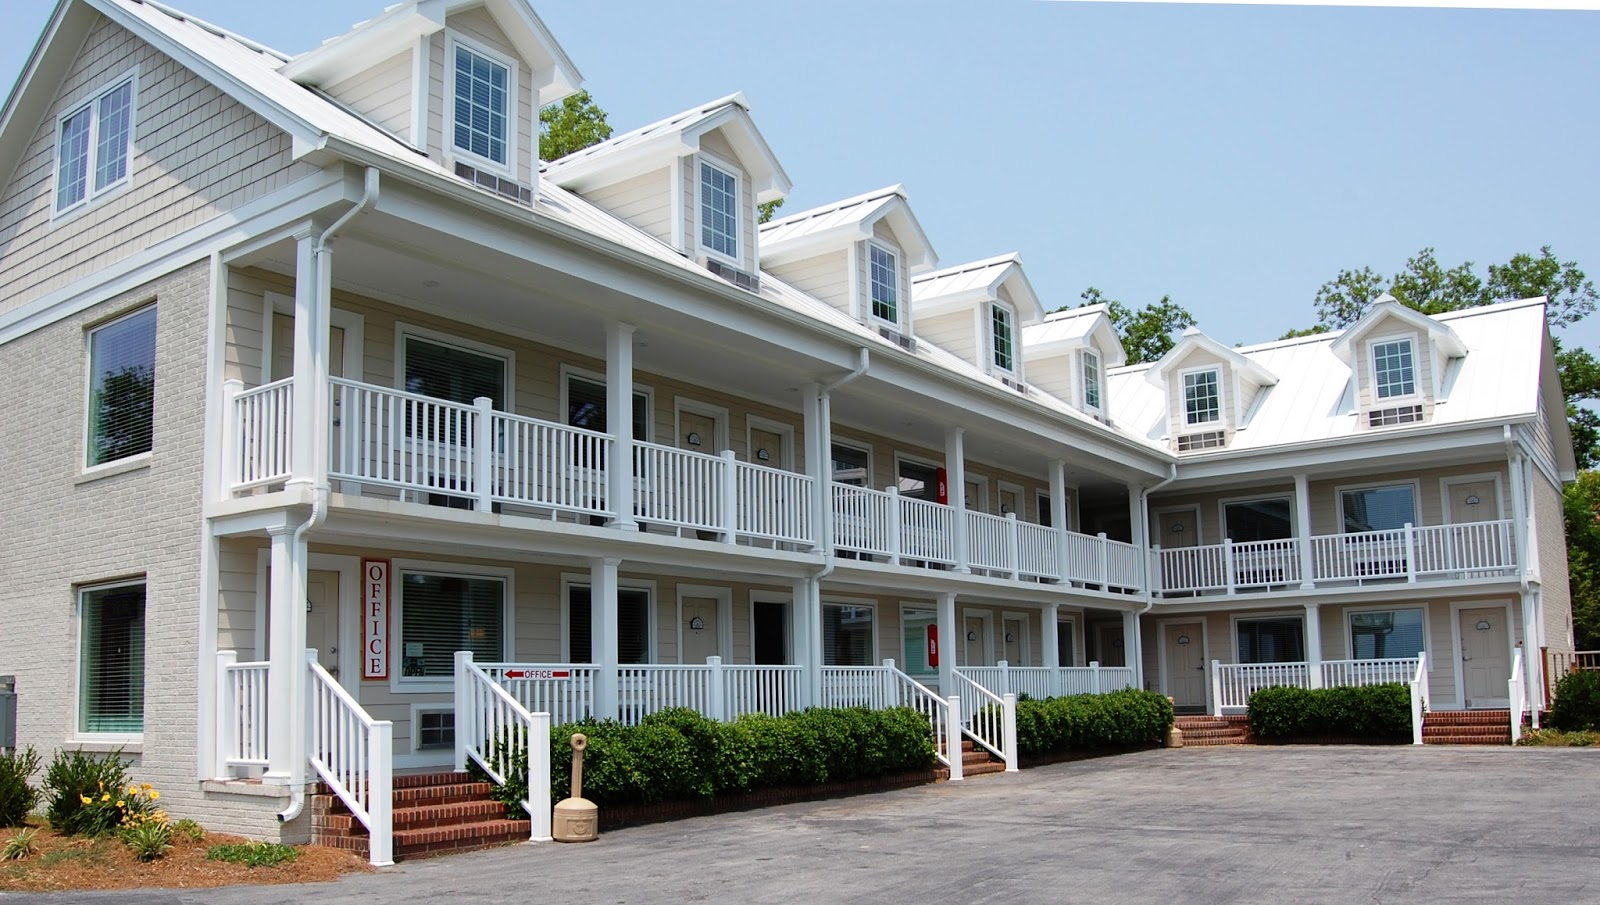 Favorite Hotel In Oriental Nc Check Our Reviews On Google